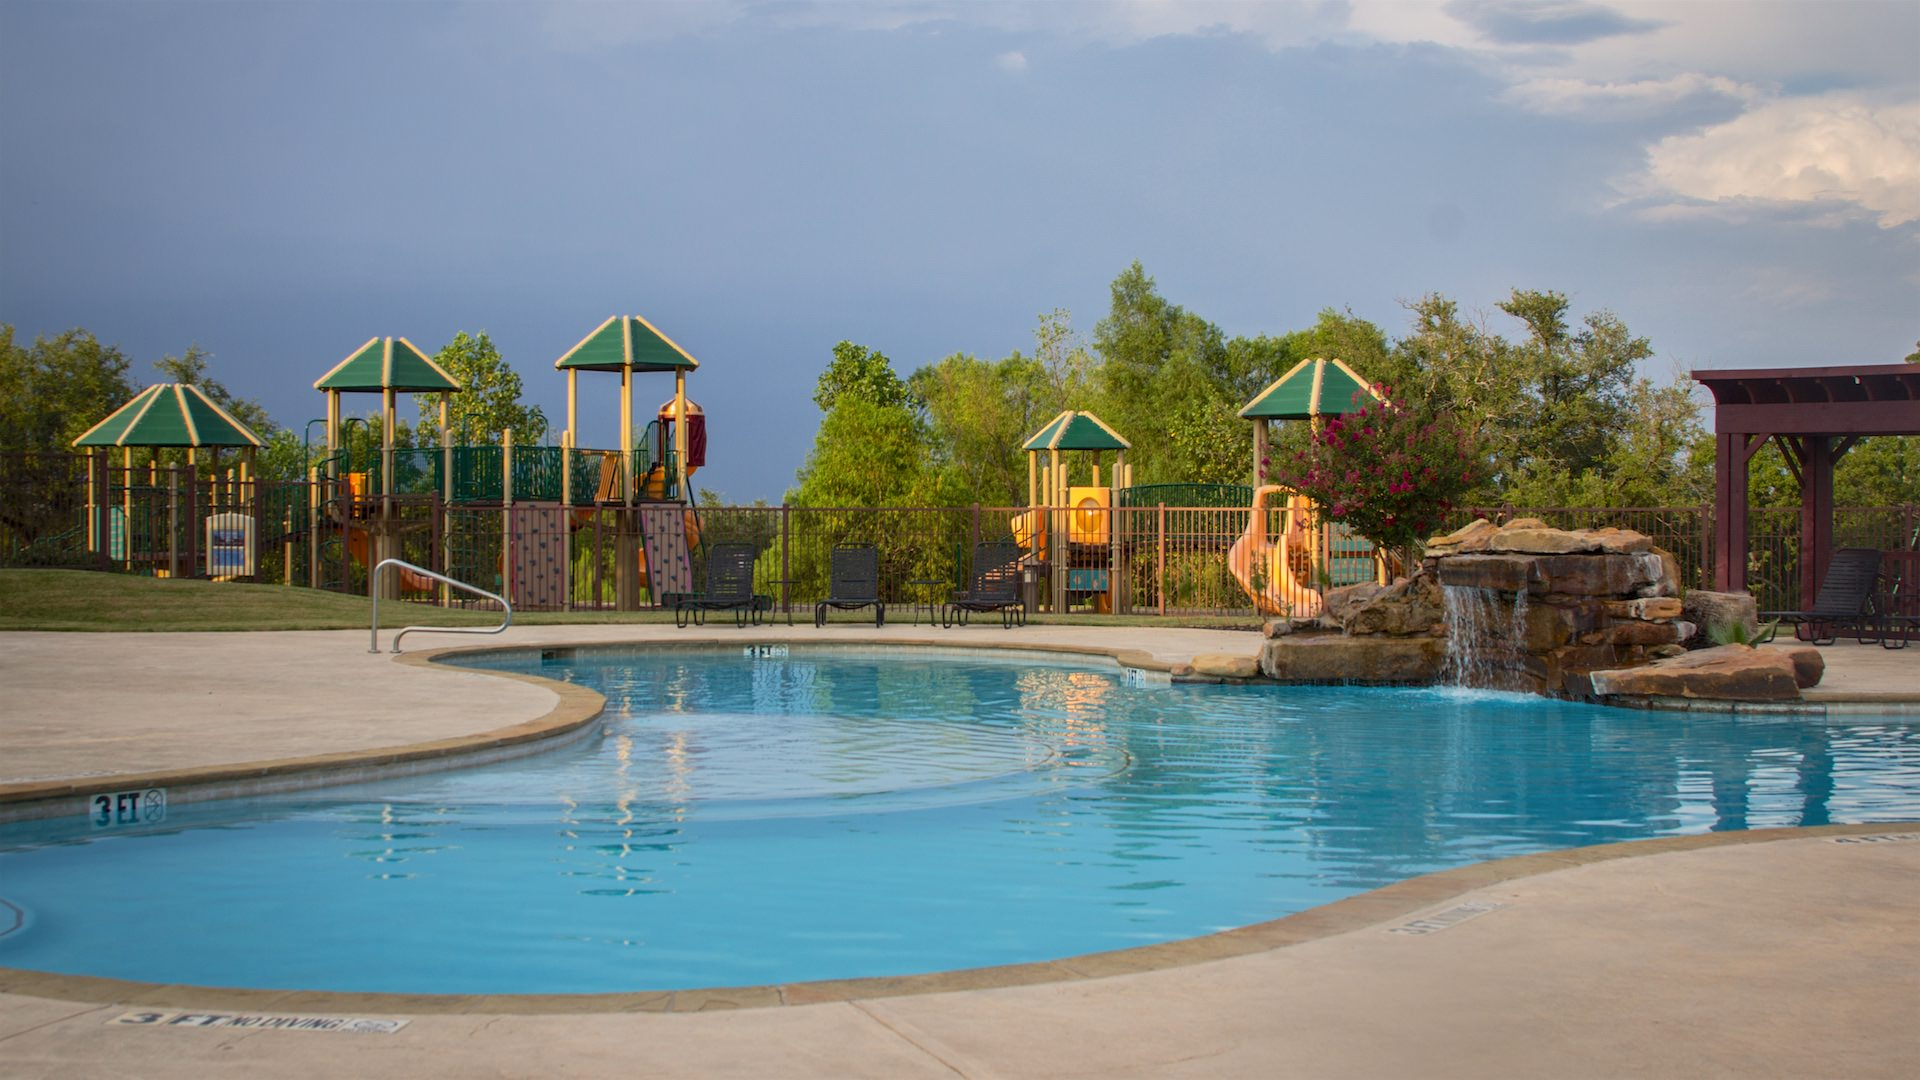 Photo of the Burgess Pool & playground